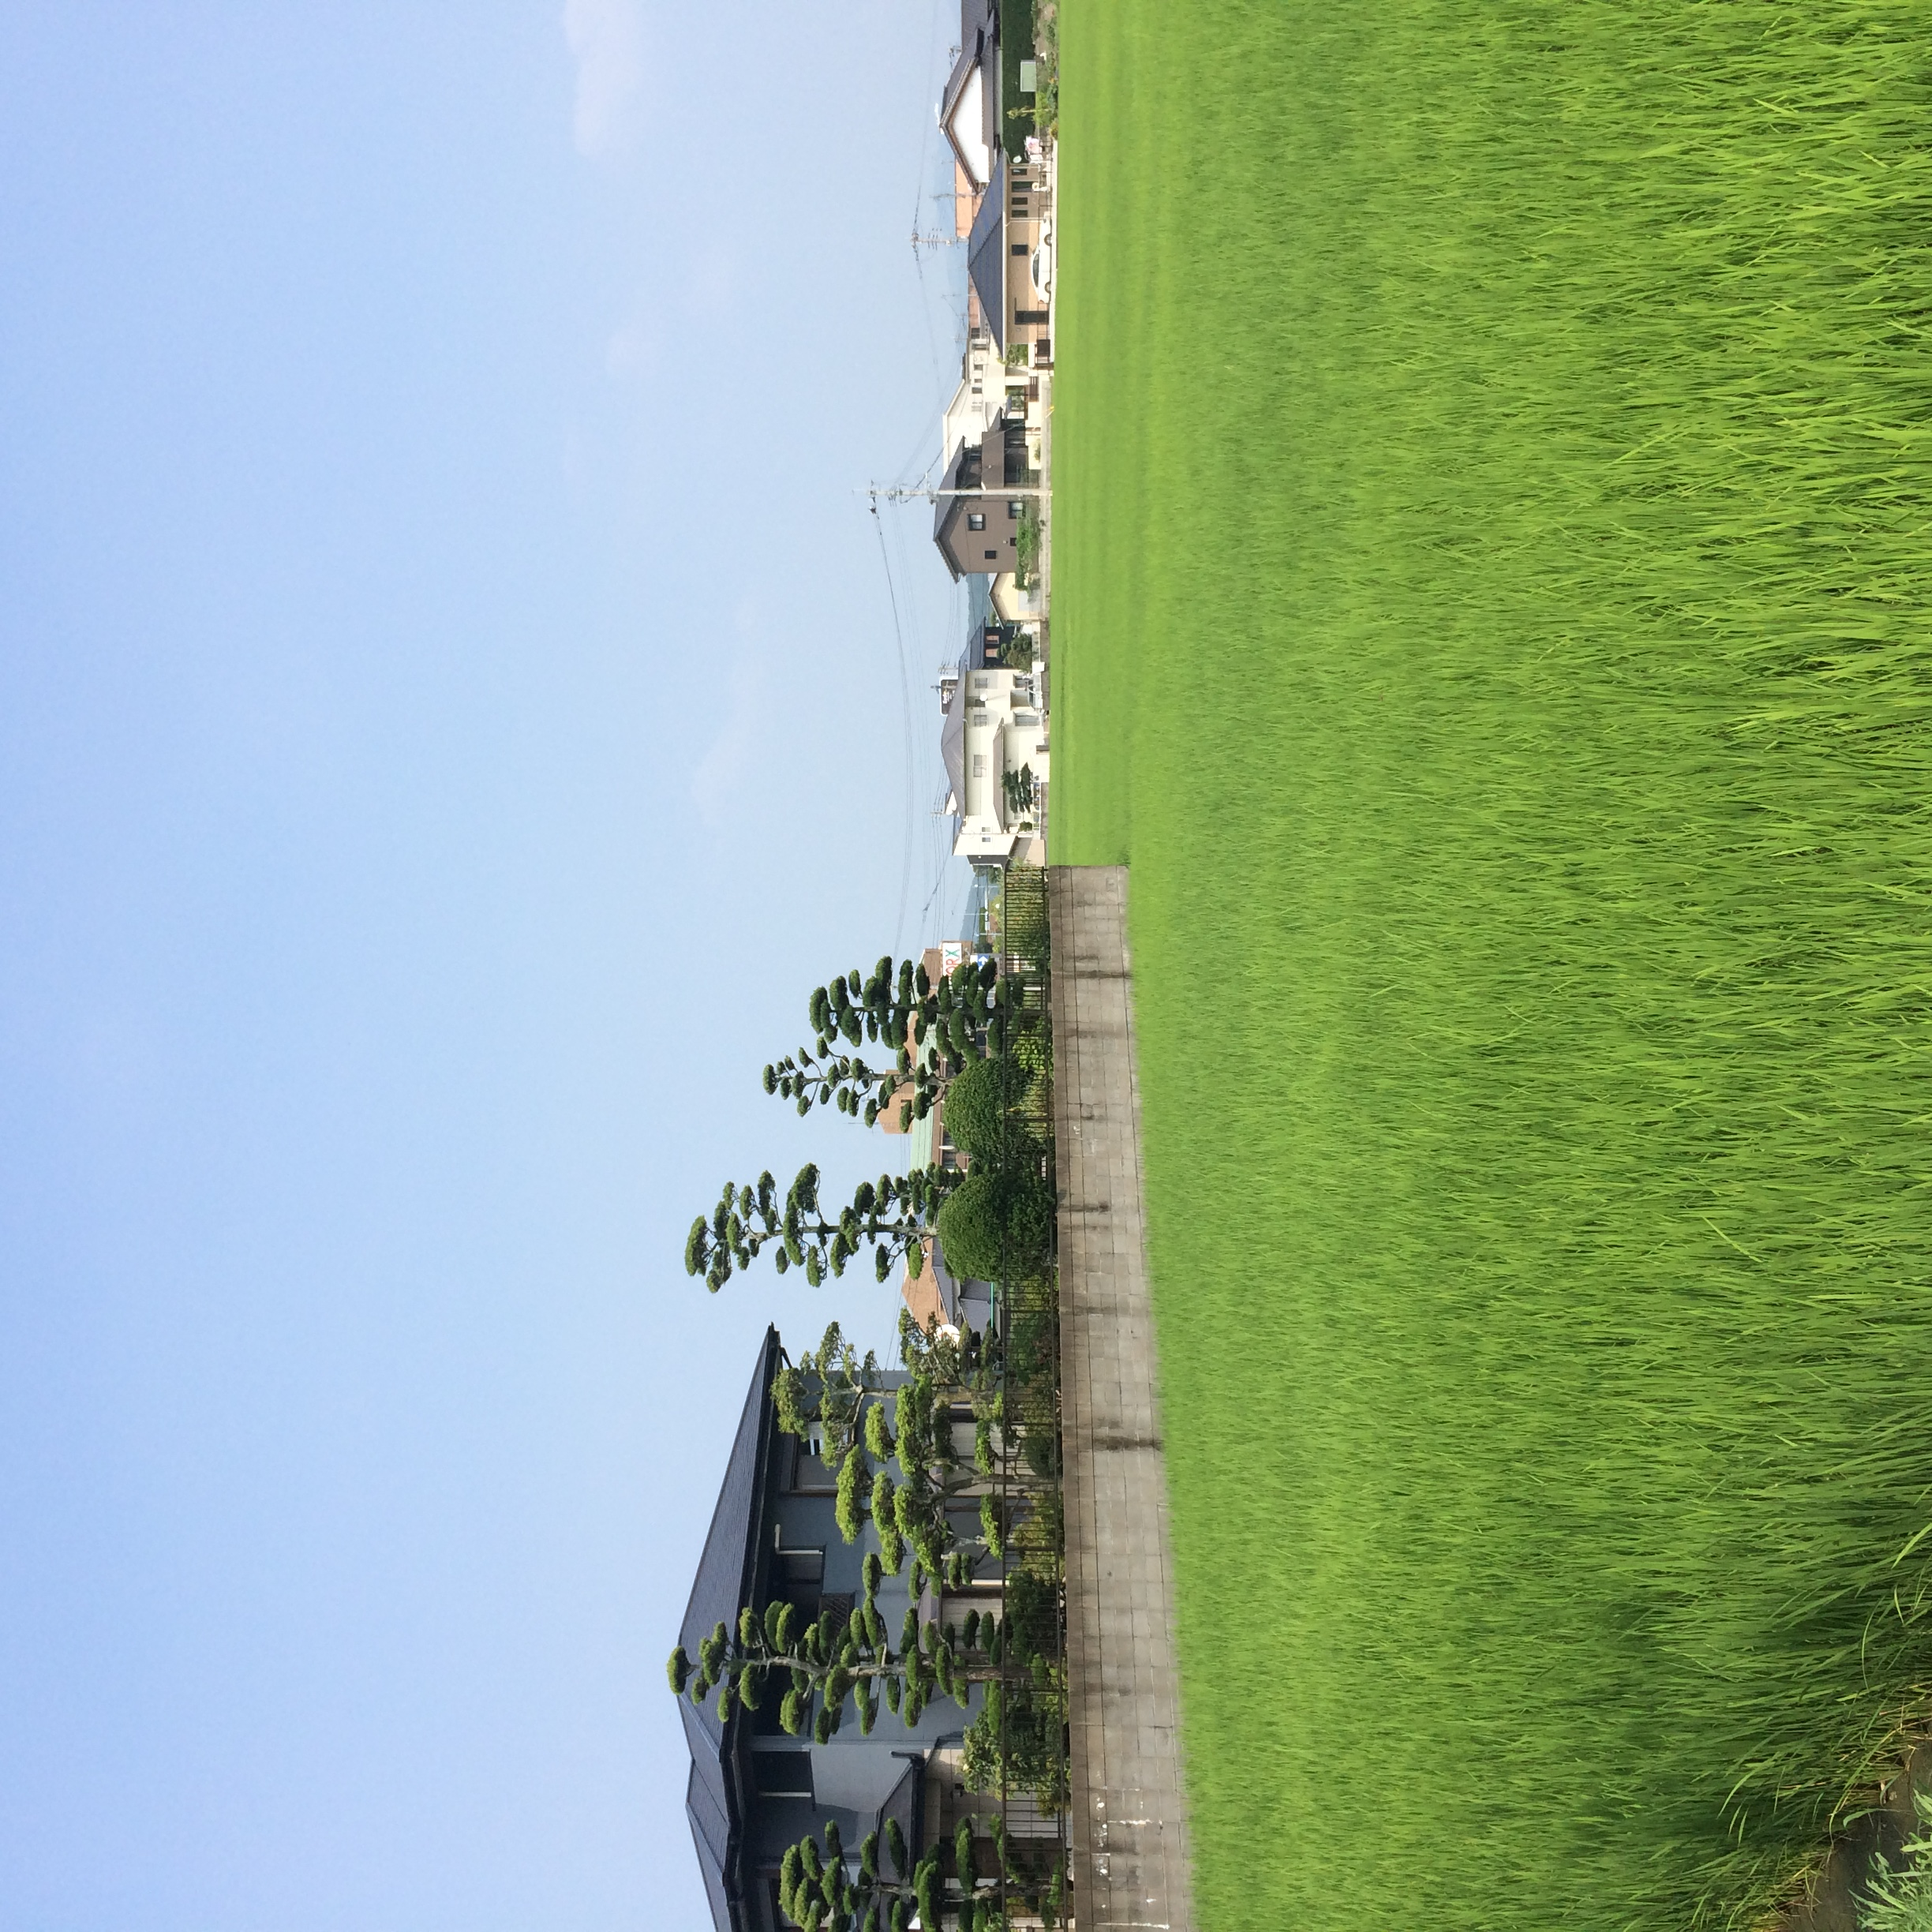 so green, so green those rice fields